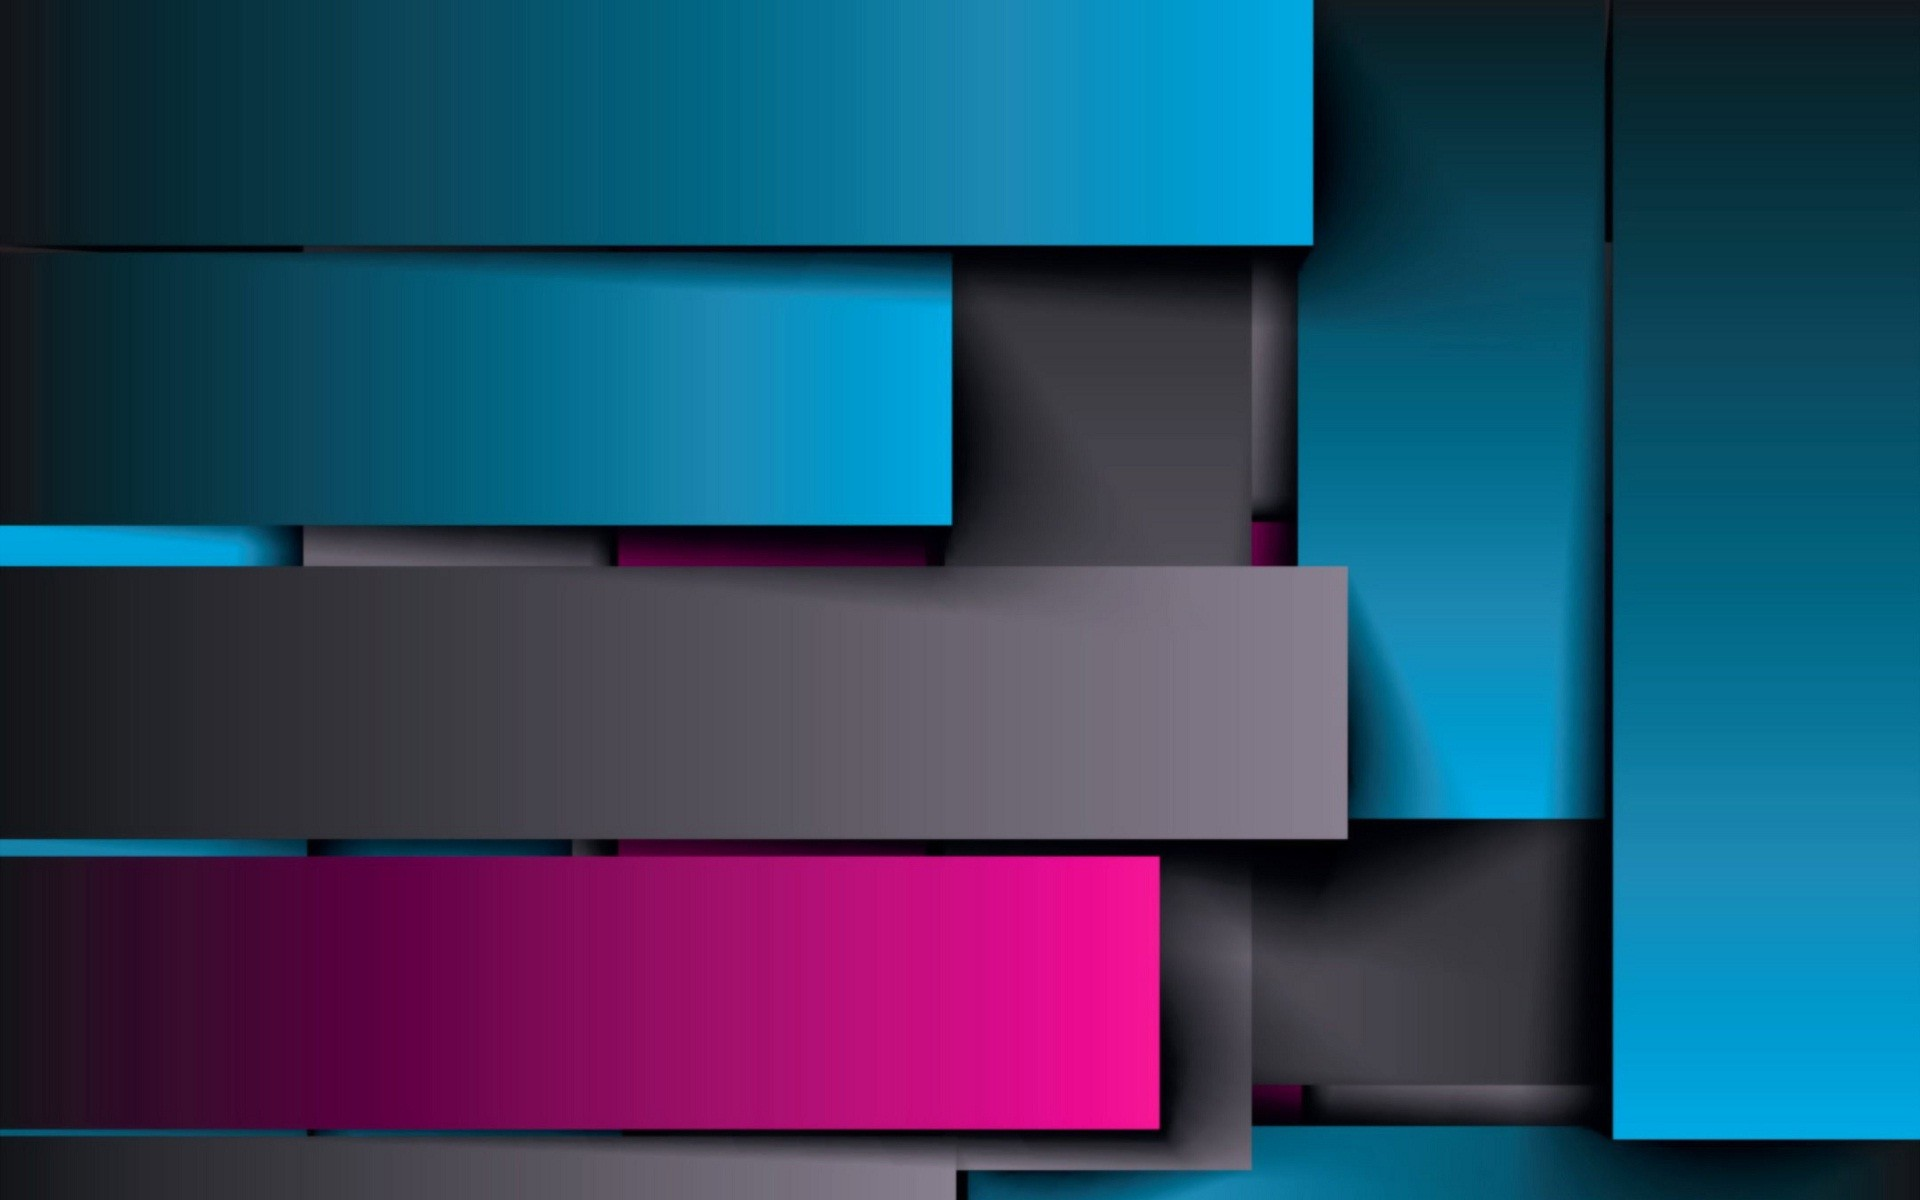 Shodow shine blue and pink abstract wallpaper